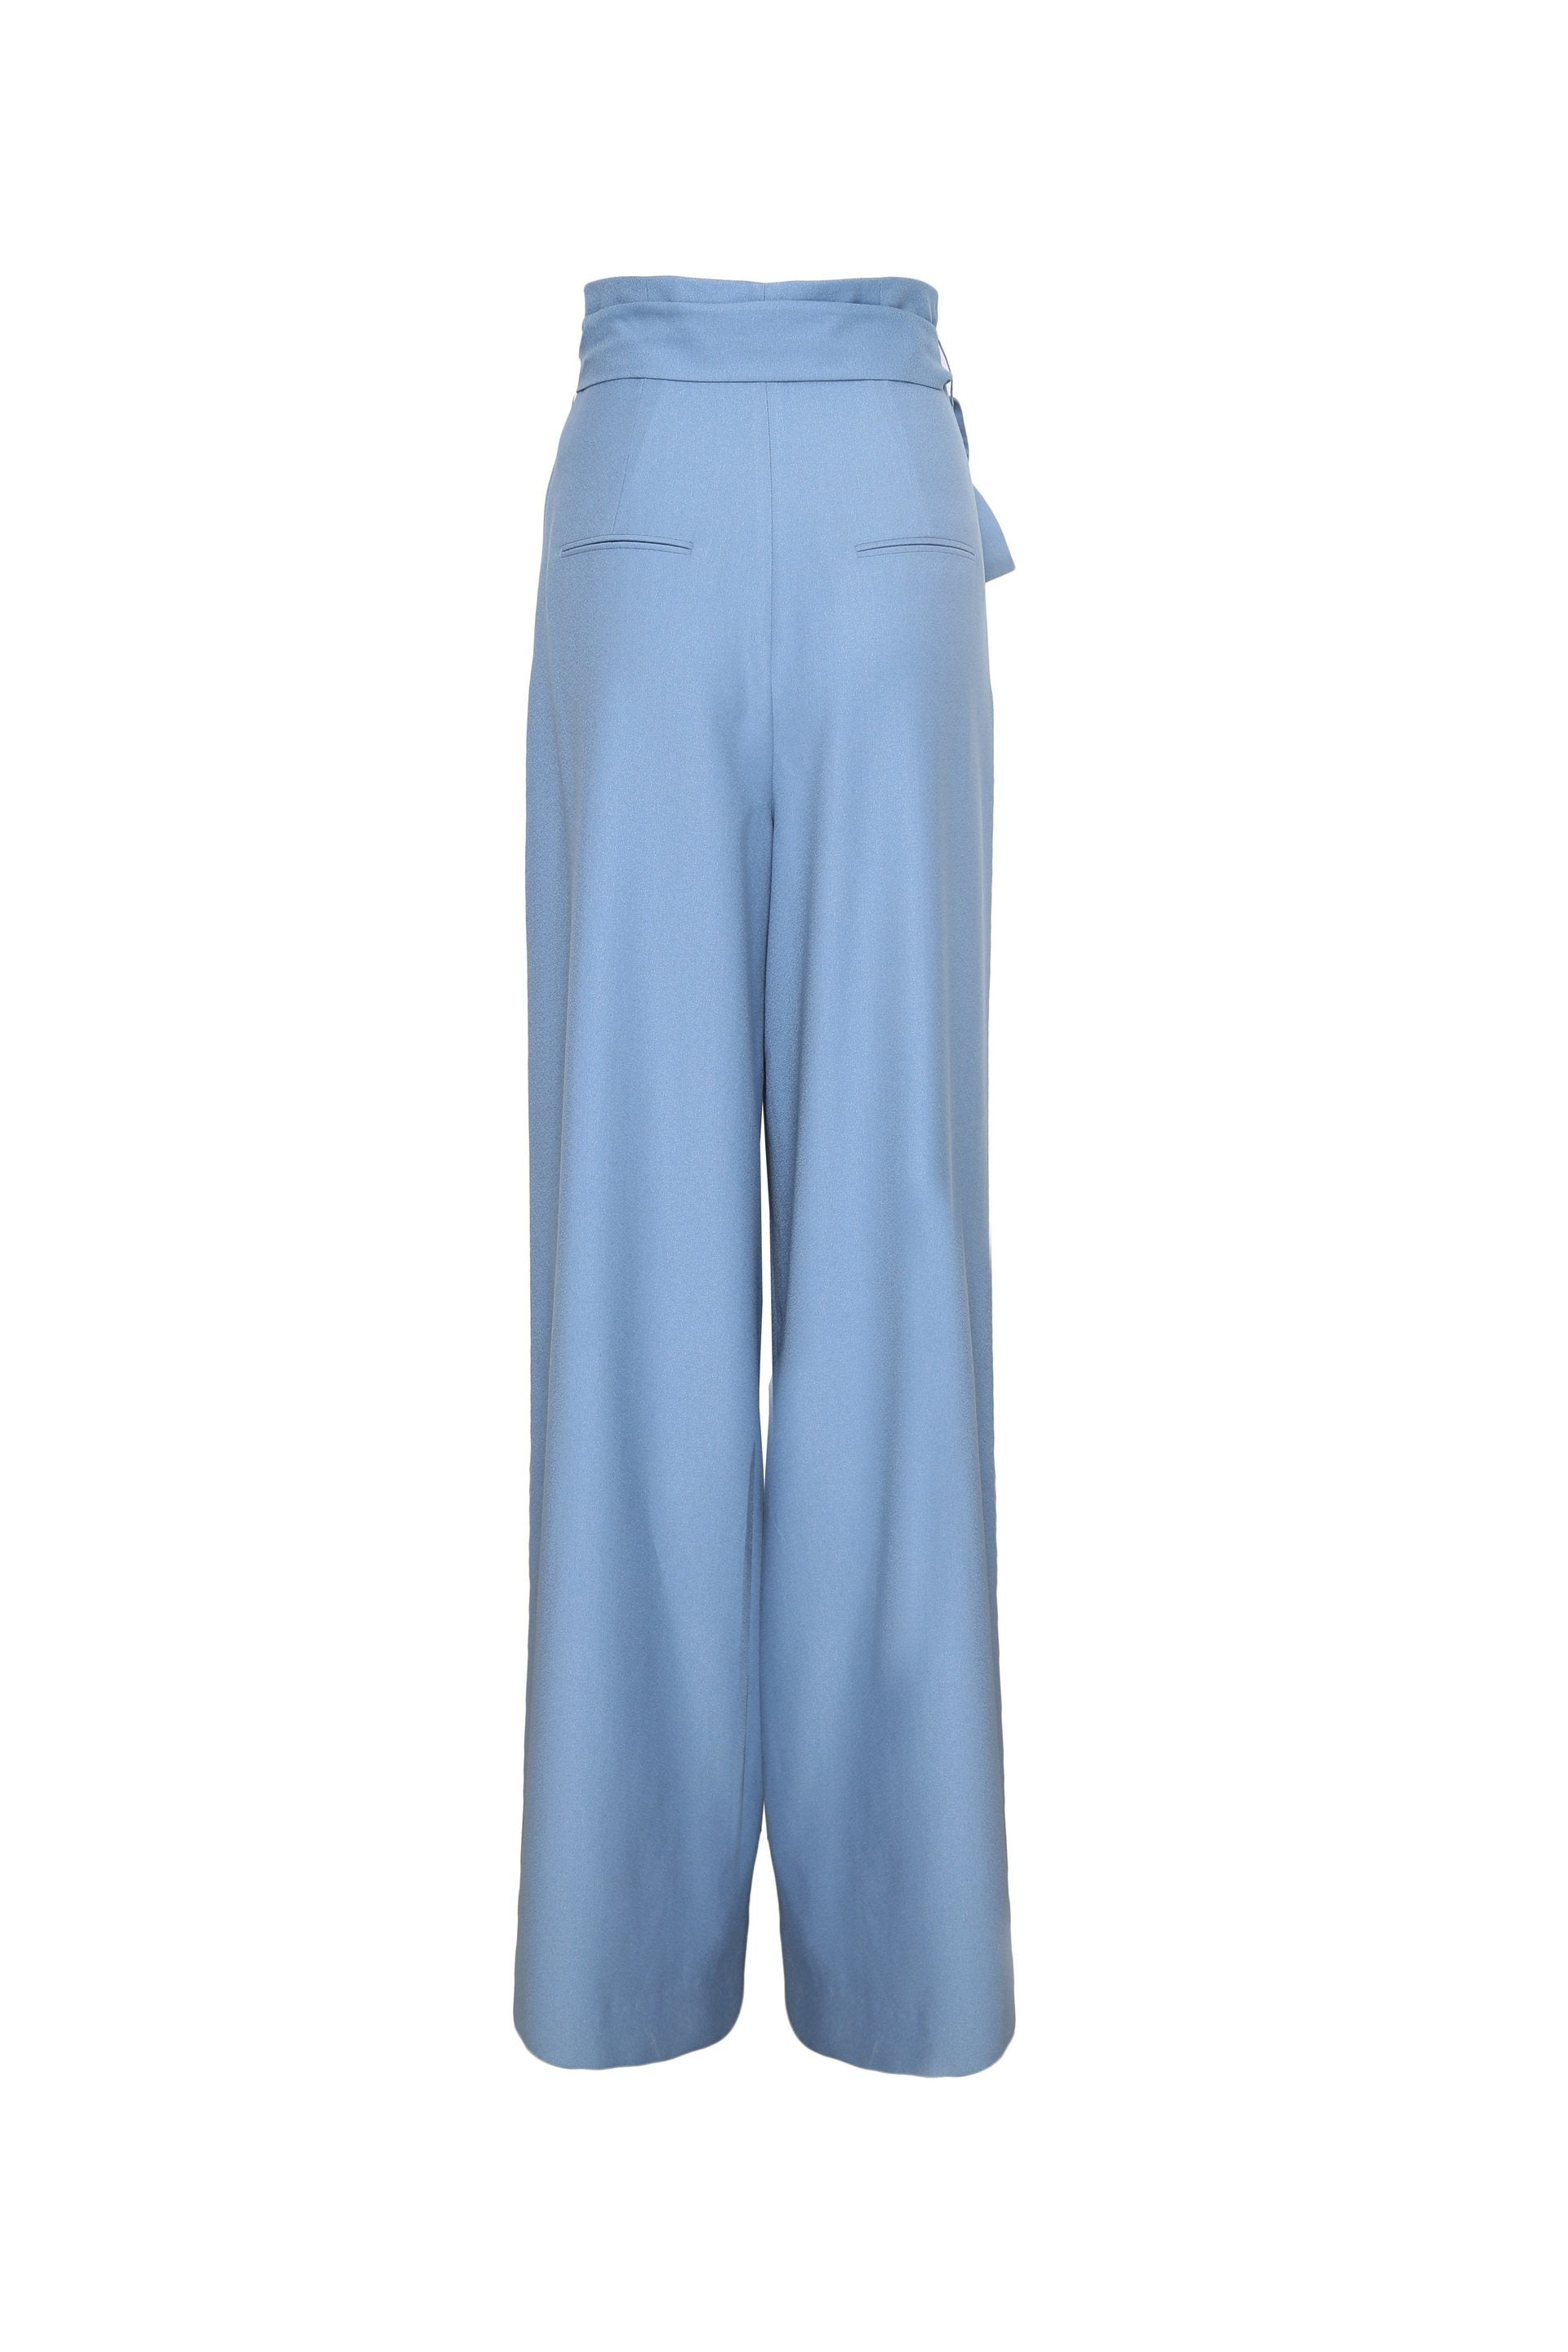 Wide Leg Oversized Tie Knot Trouser